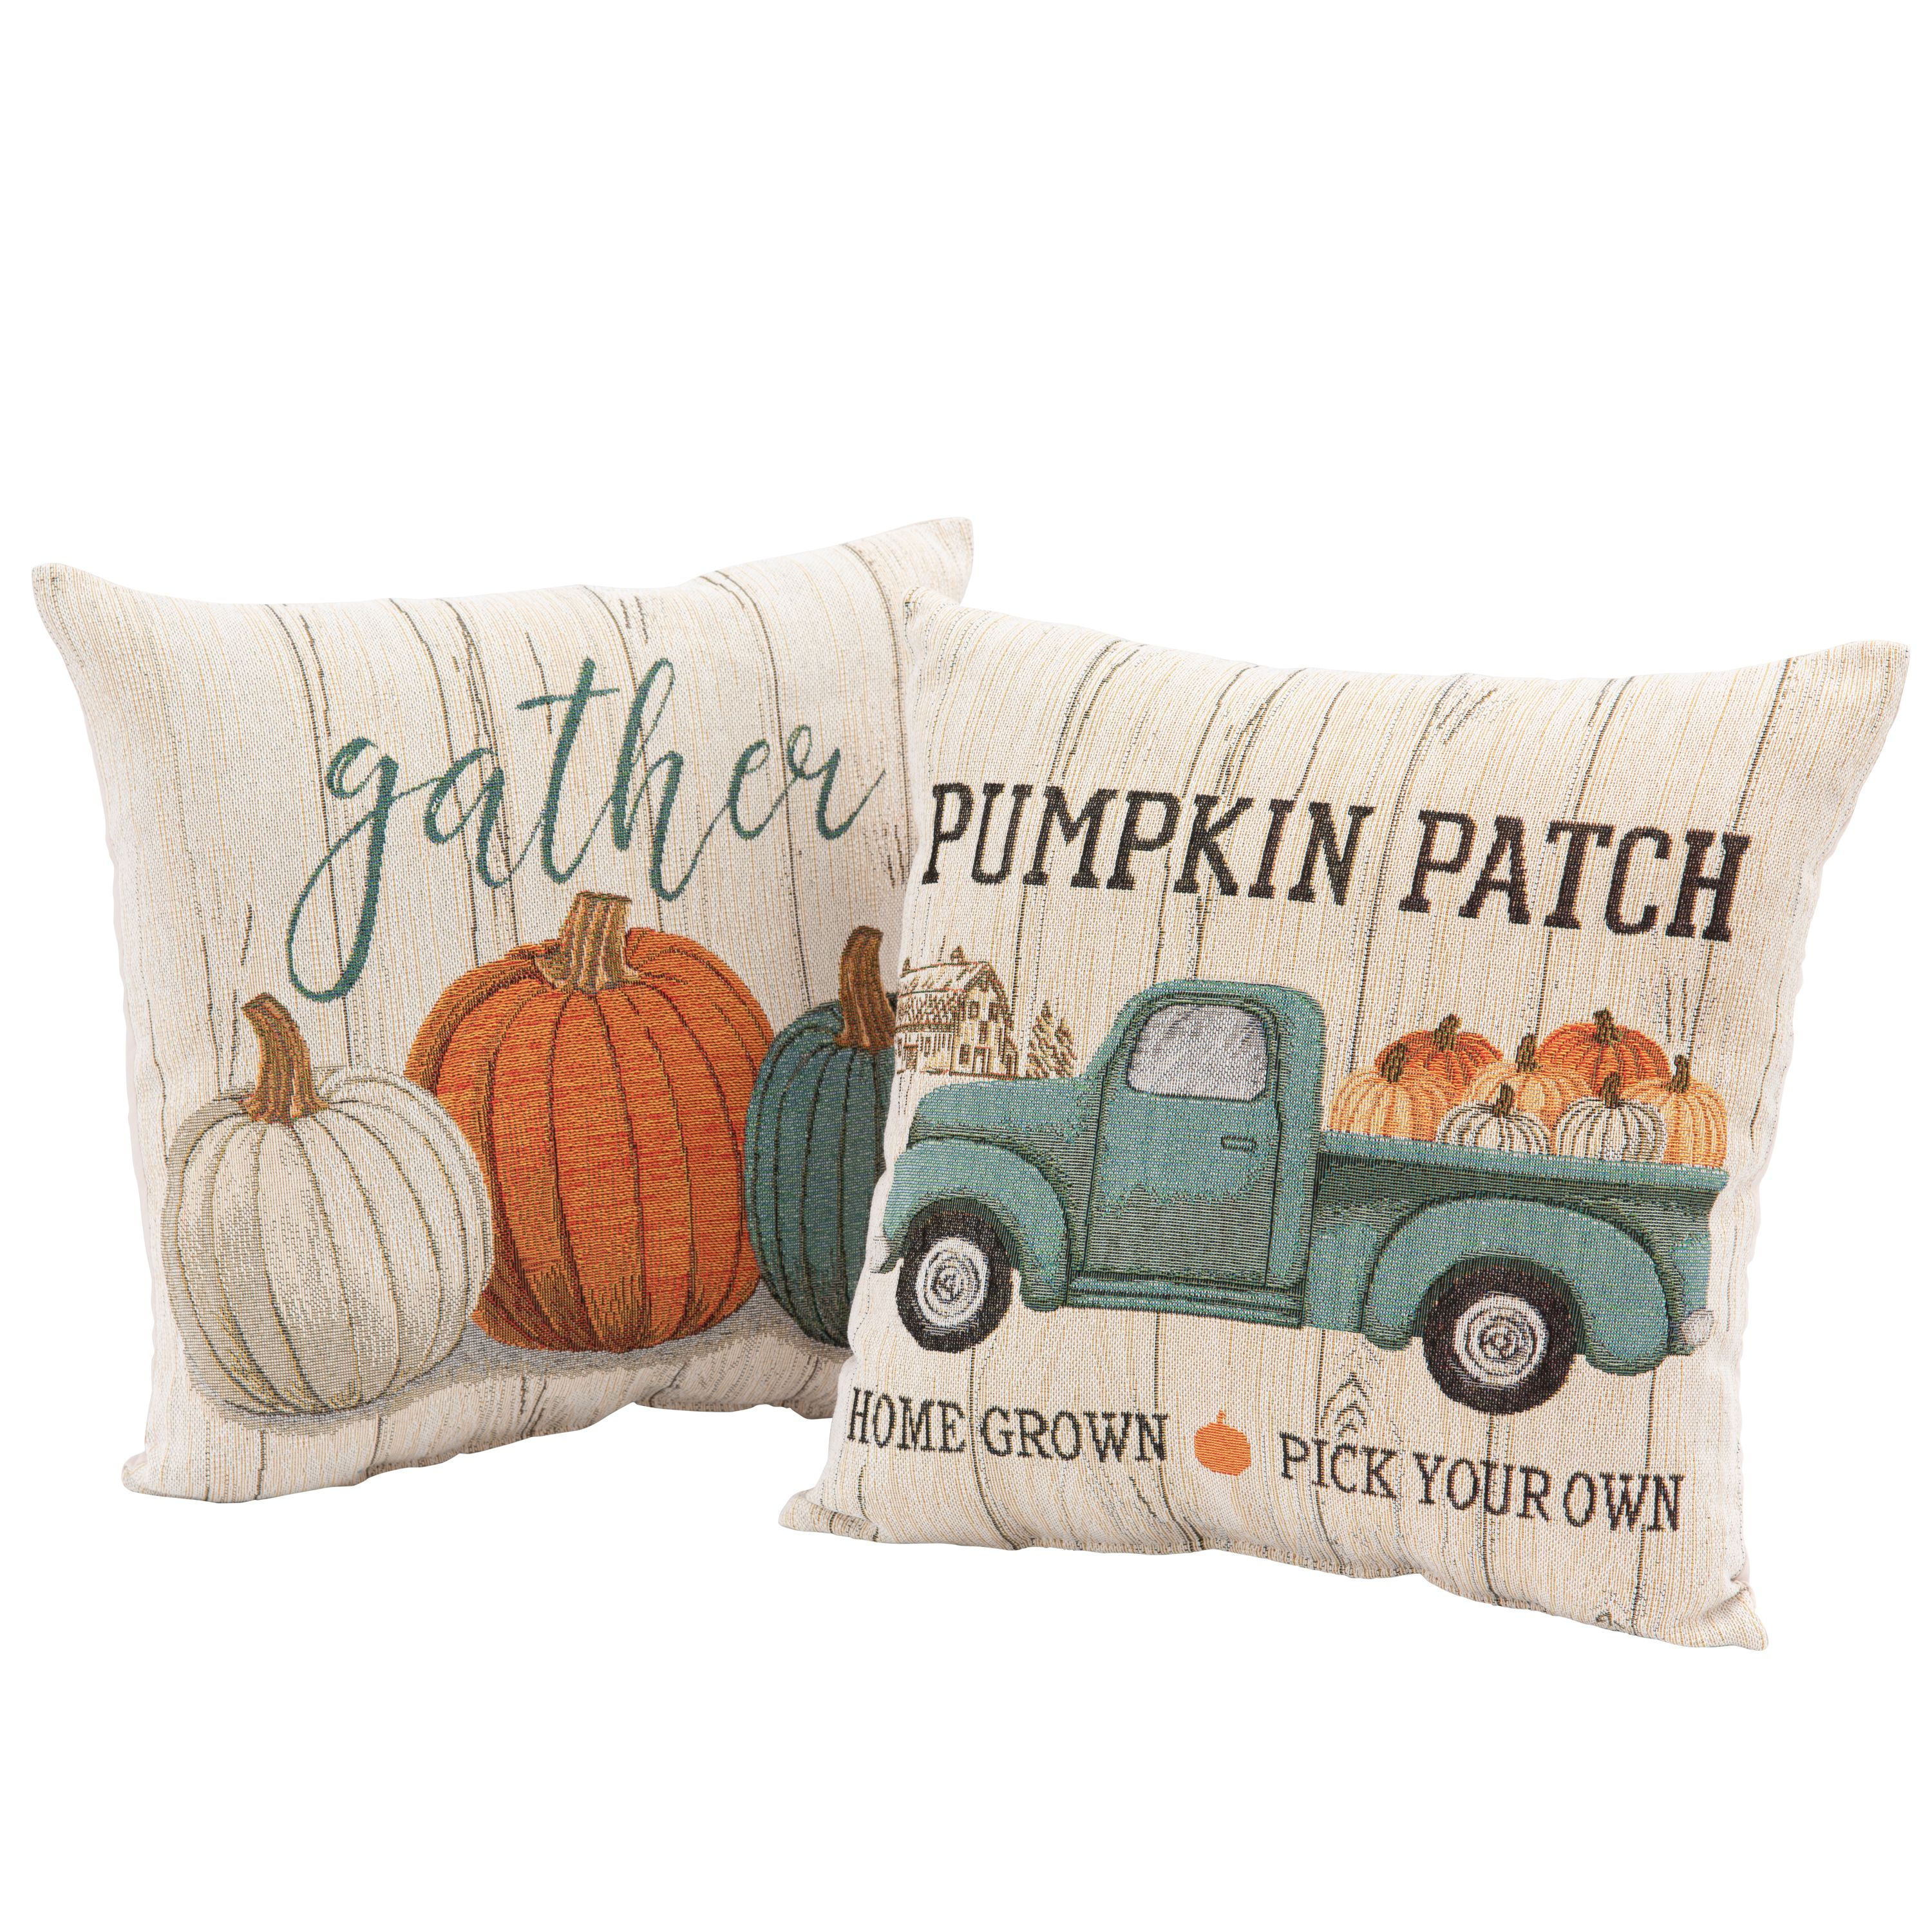 Mainstays Pumpkin Patch Decorative Throw Pillows 17 X 17 2 Pack Harvest Walmart Com Walmart Com